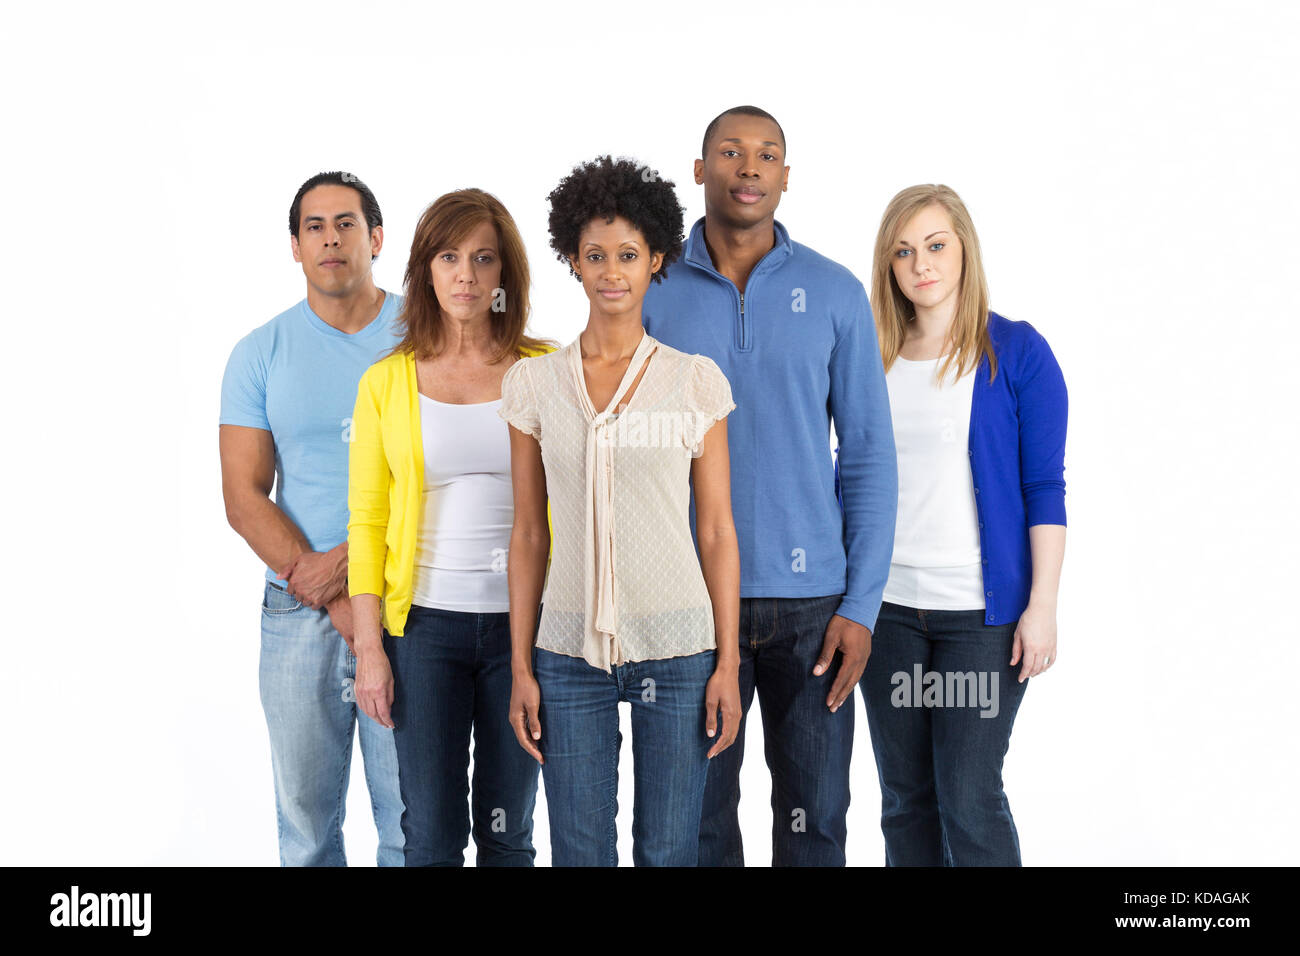 Diverse group of friends - Stock Image